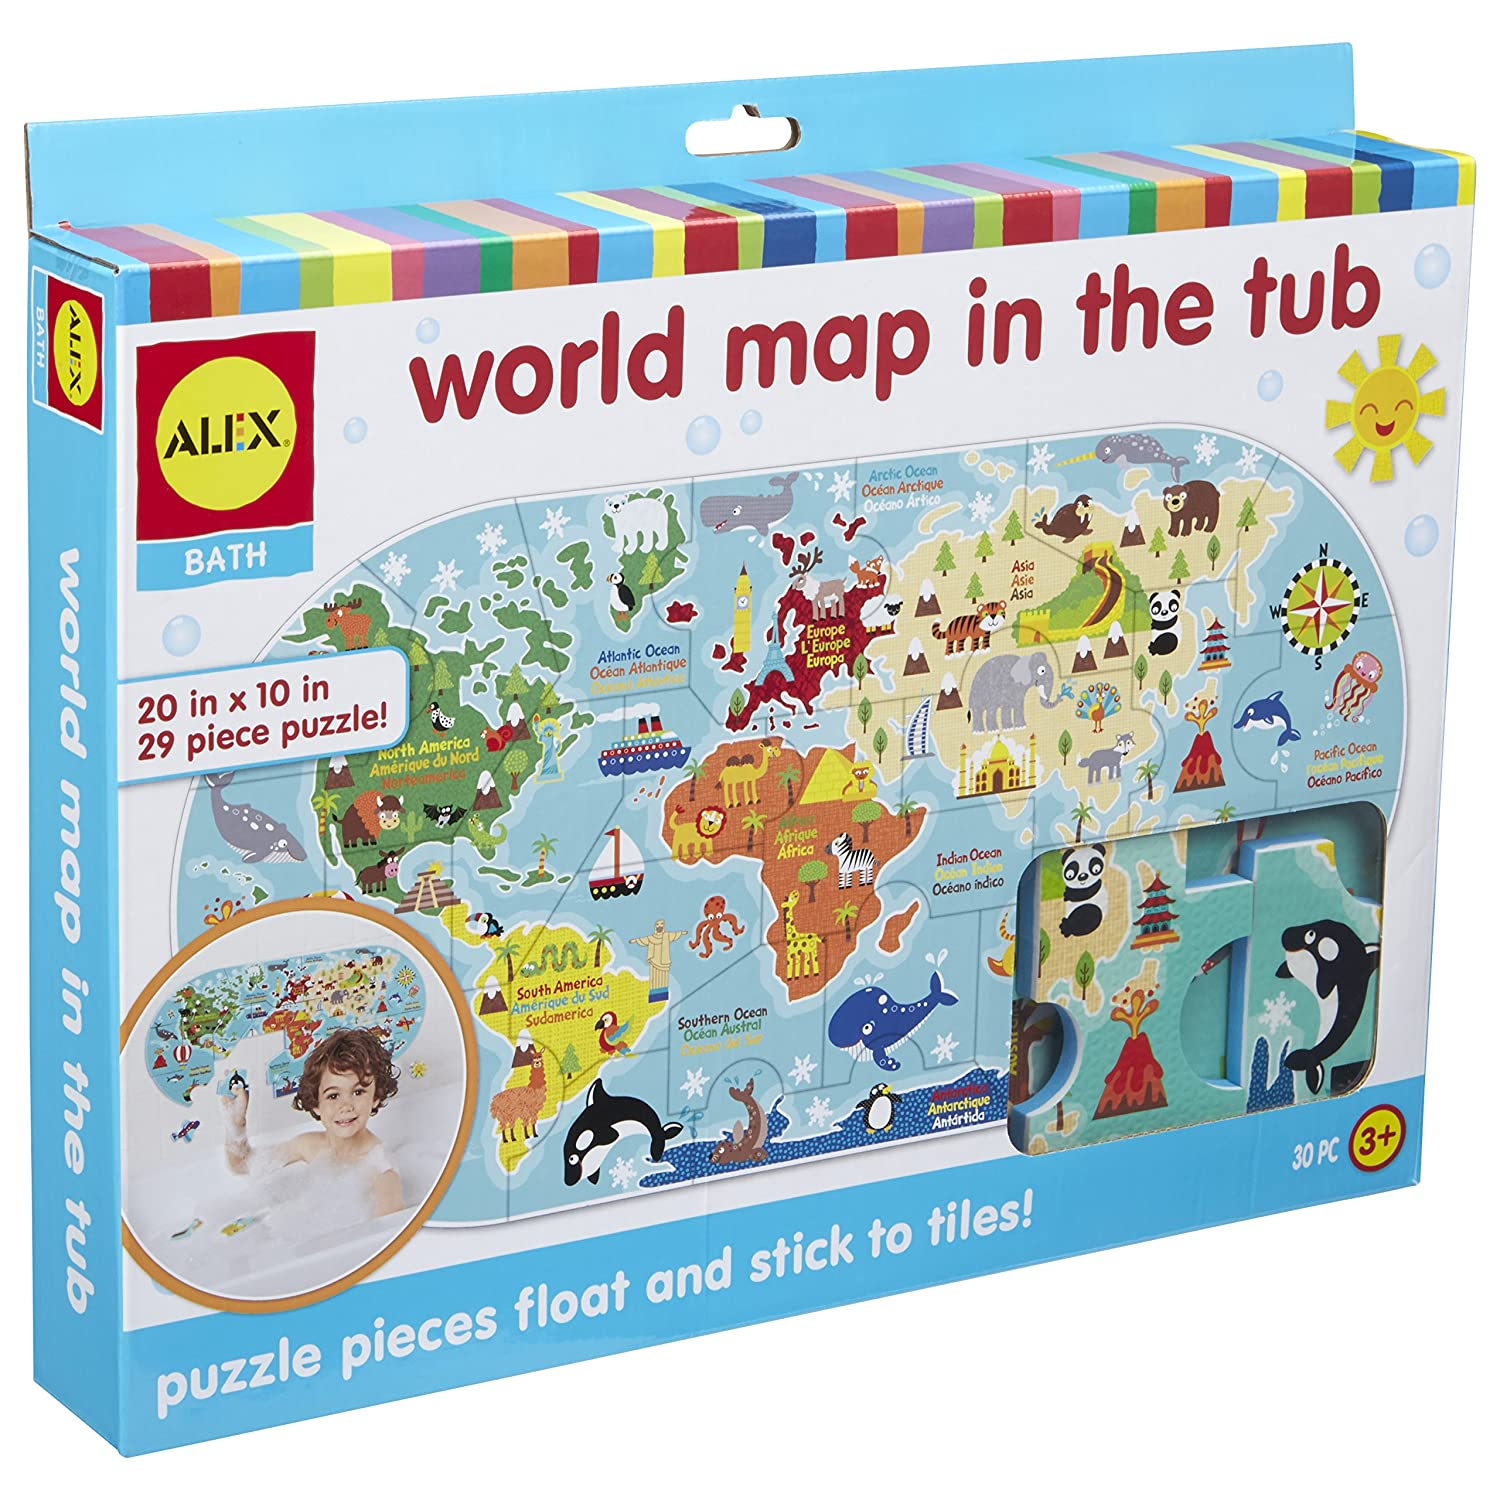 10 Best World Map for Kids Reviews in 2021 17